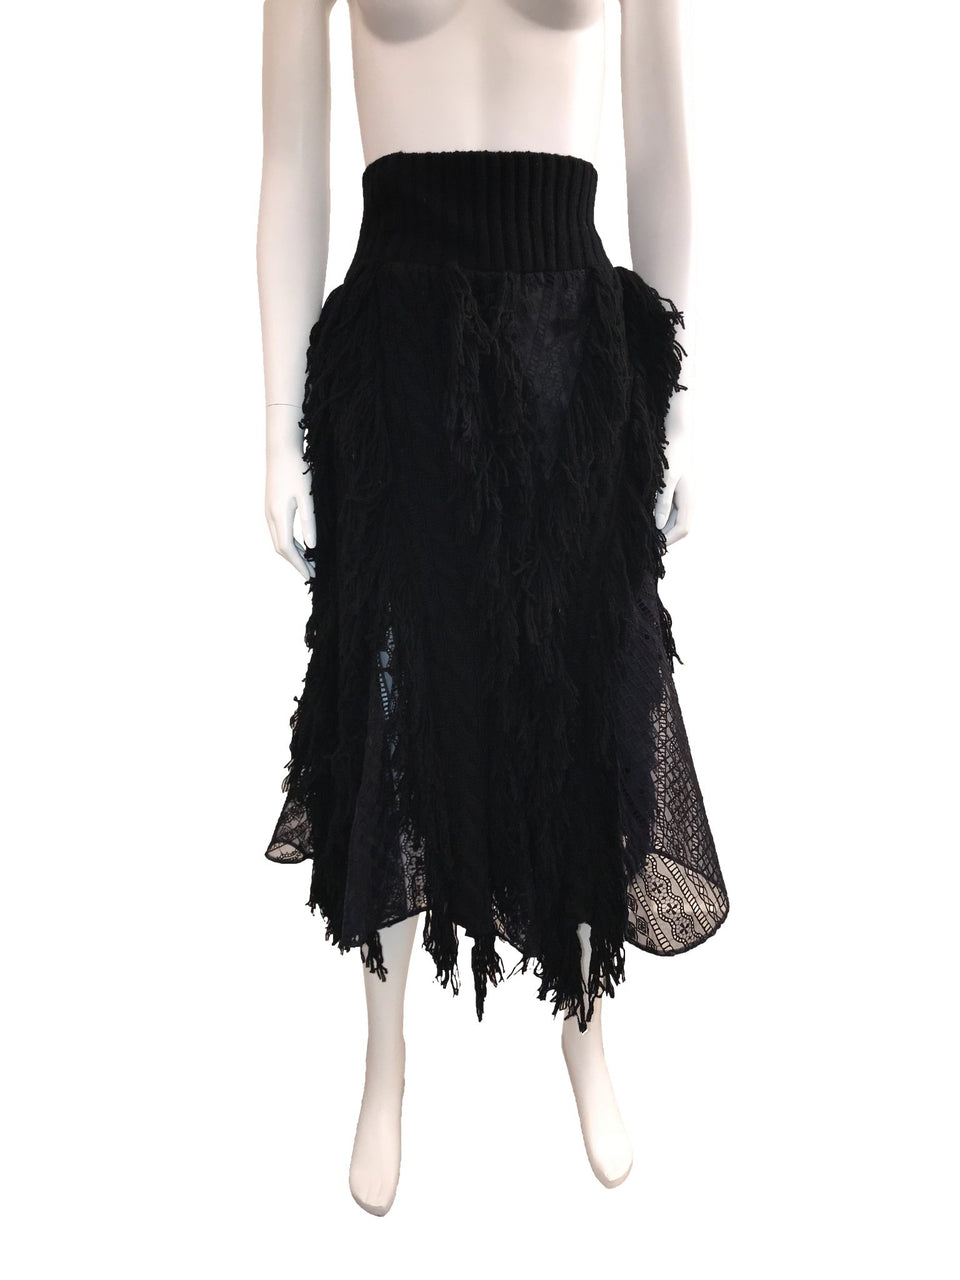 Sacai Black Cable Knit Fringe Skirt w/ Lace Inserts